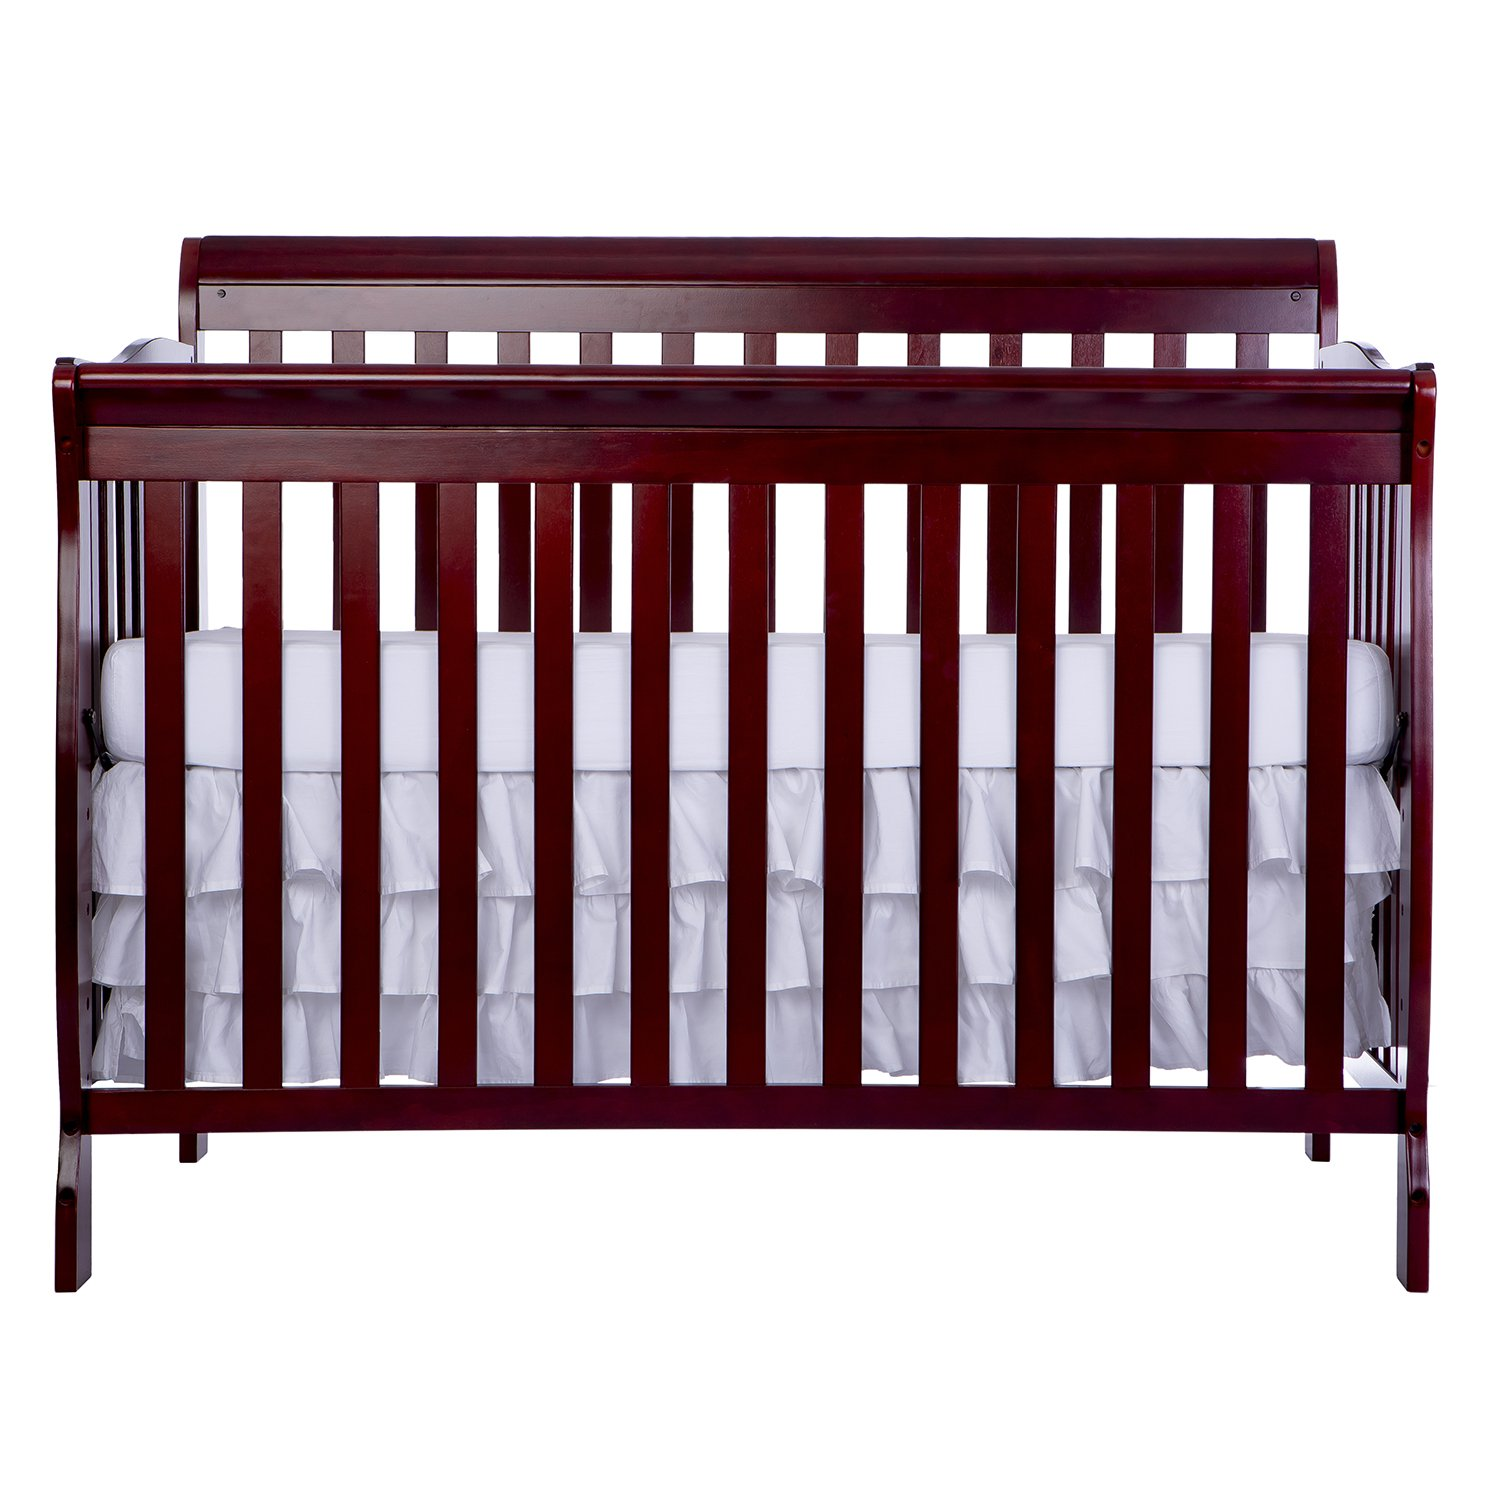 Crib for sale in the philippines - Amazon Com Dream On Me Ashton 4 In 1 Convertible Crib Cherry Natural Baby Crib Baby